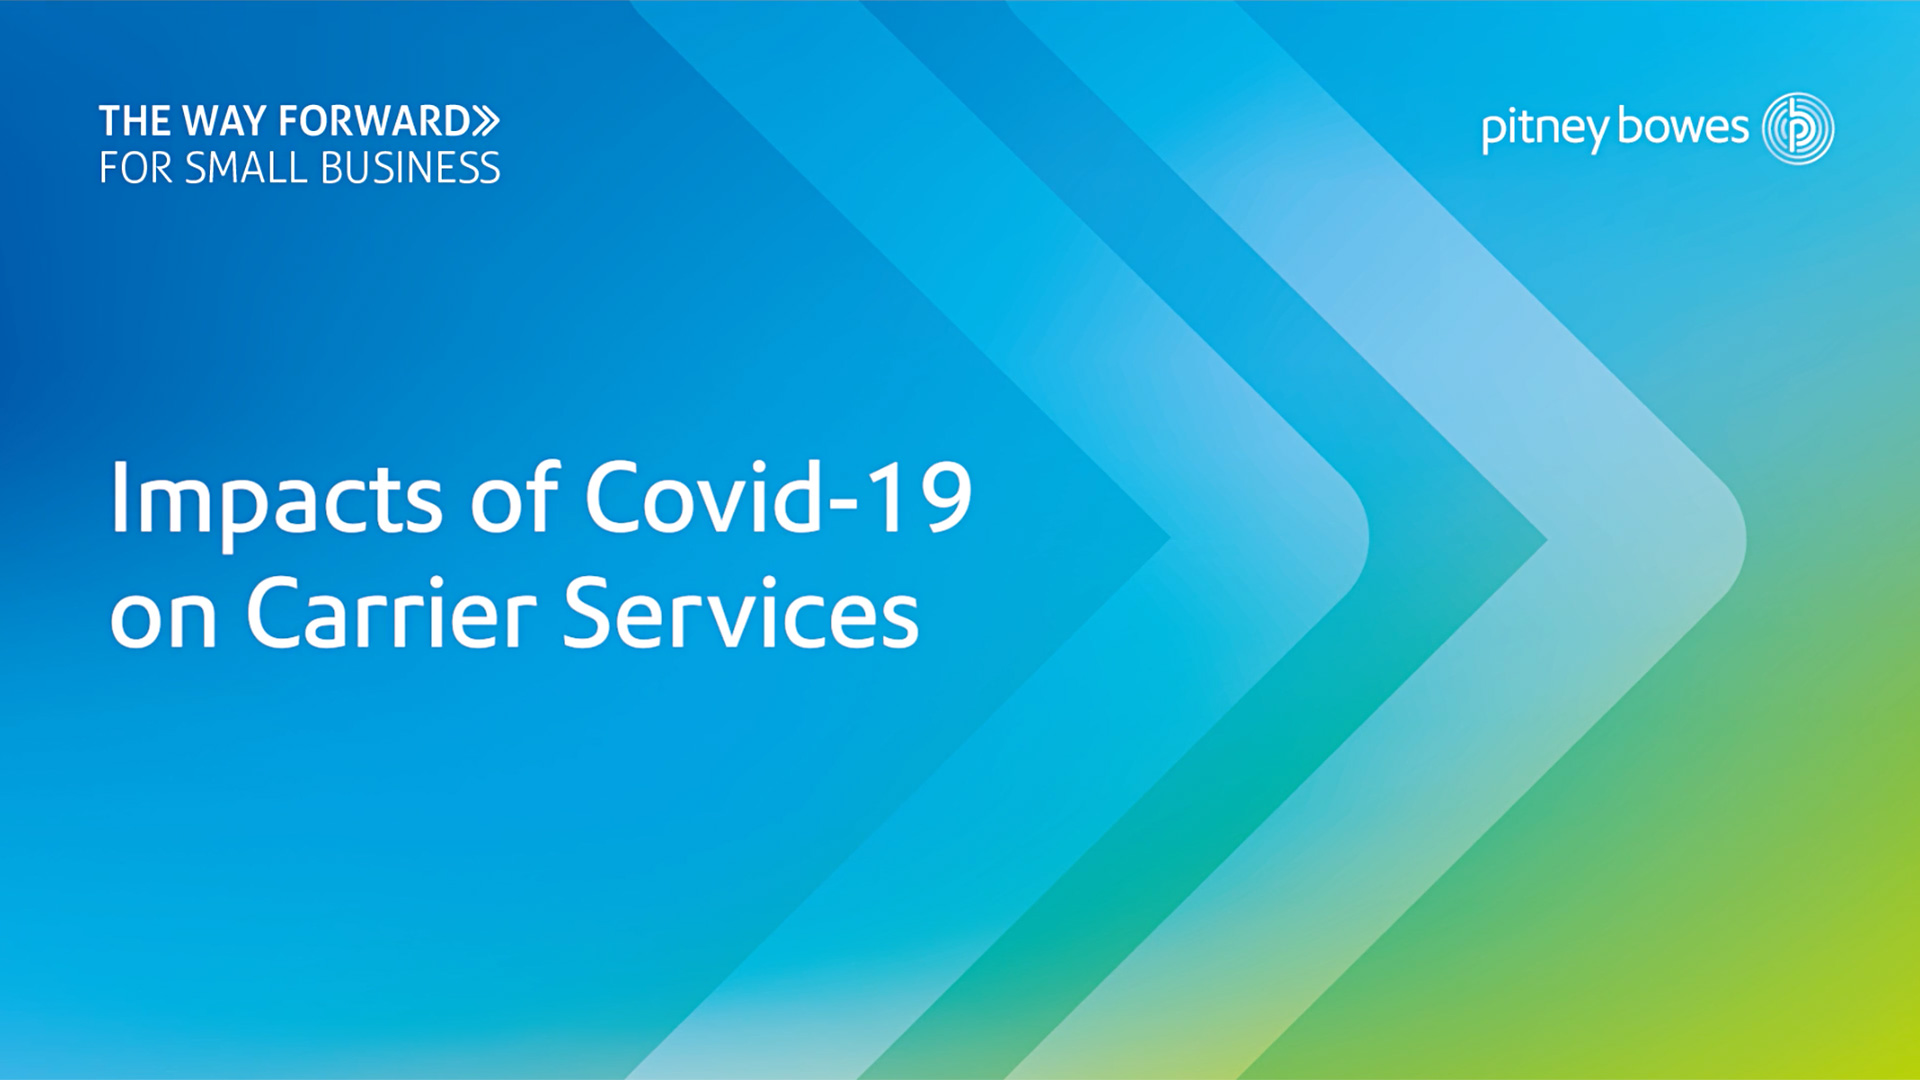 Impacts of Covid-19 on carrier services